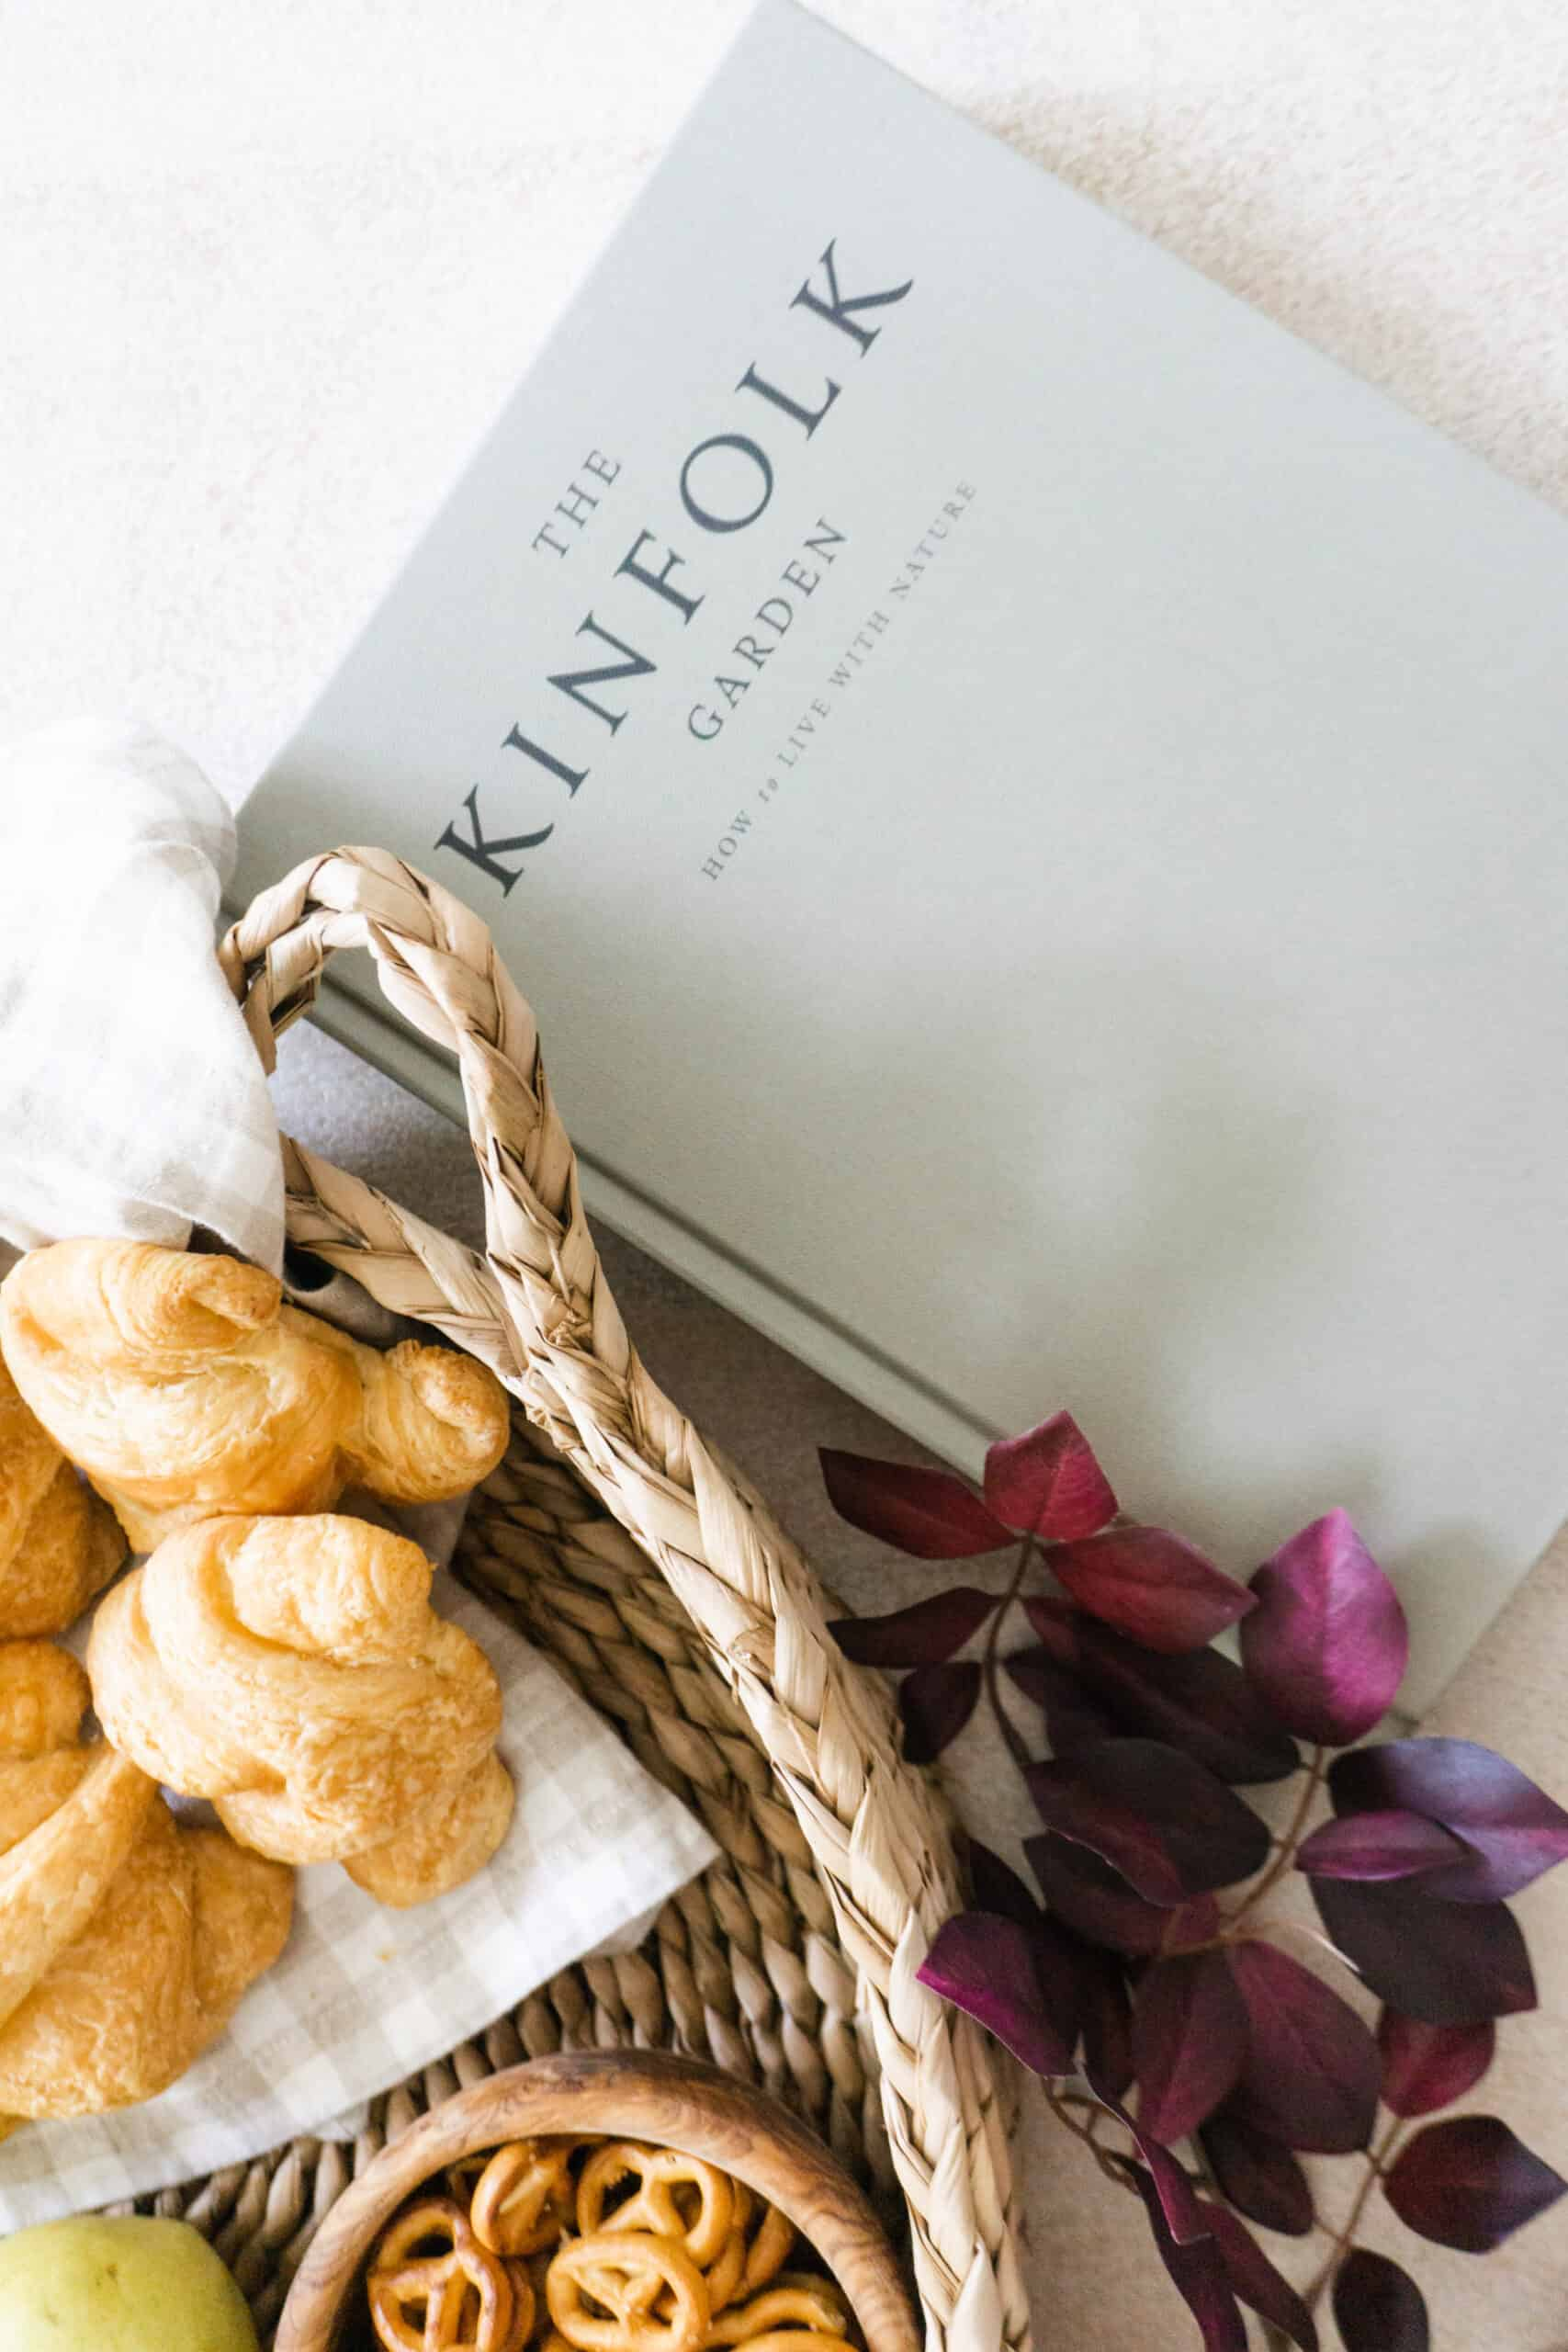 Kinfolk garden book with walmart basket styled with croissants and fruit.